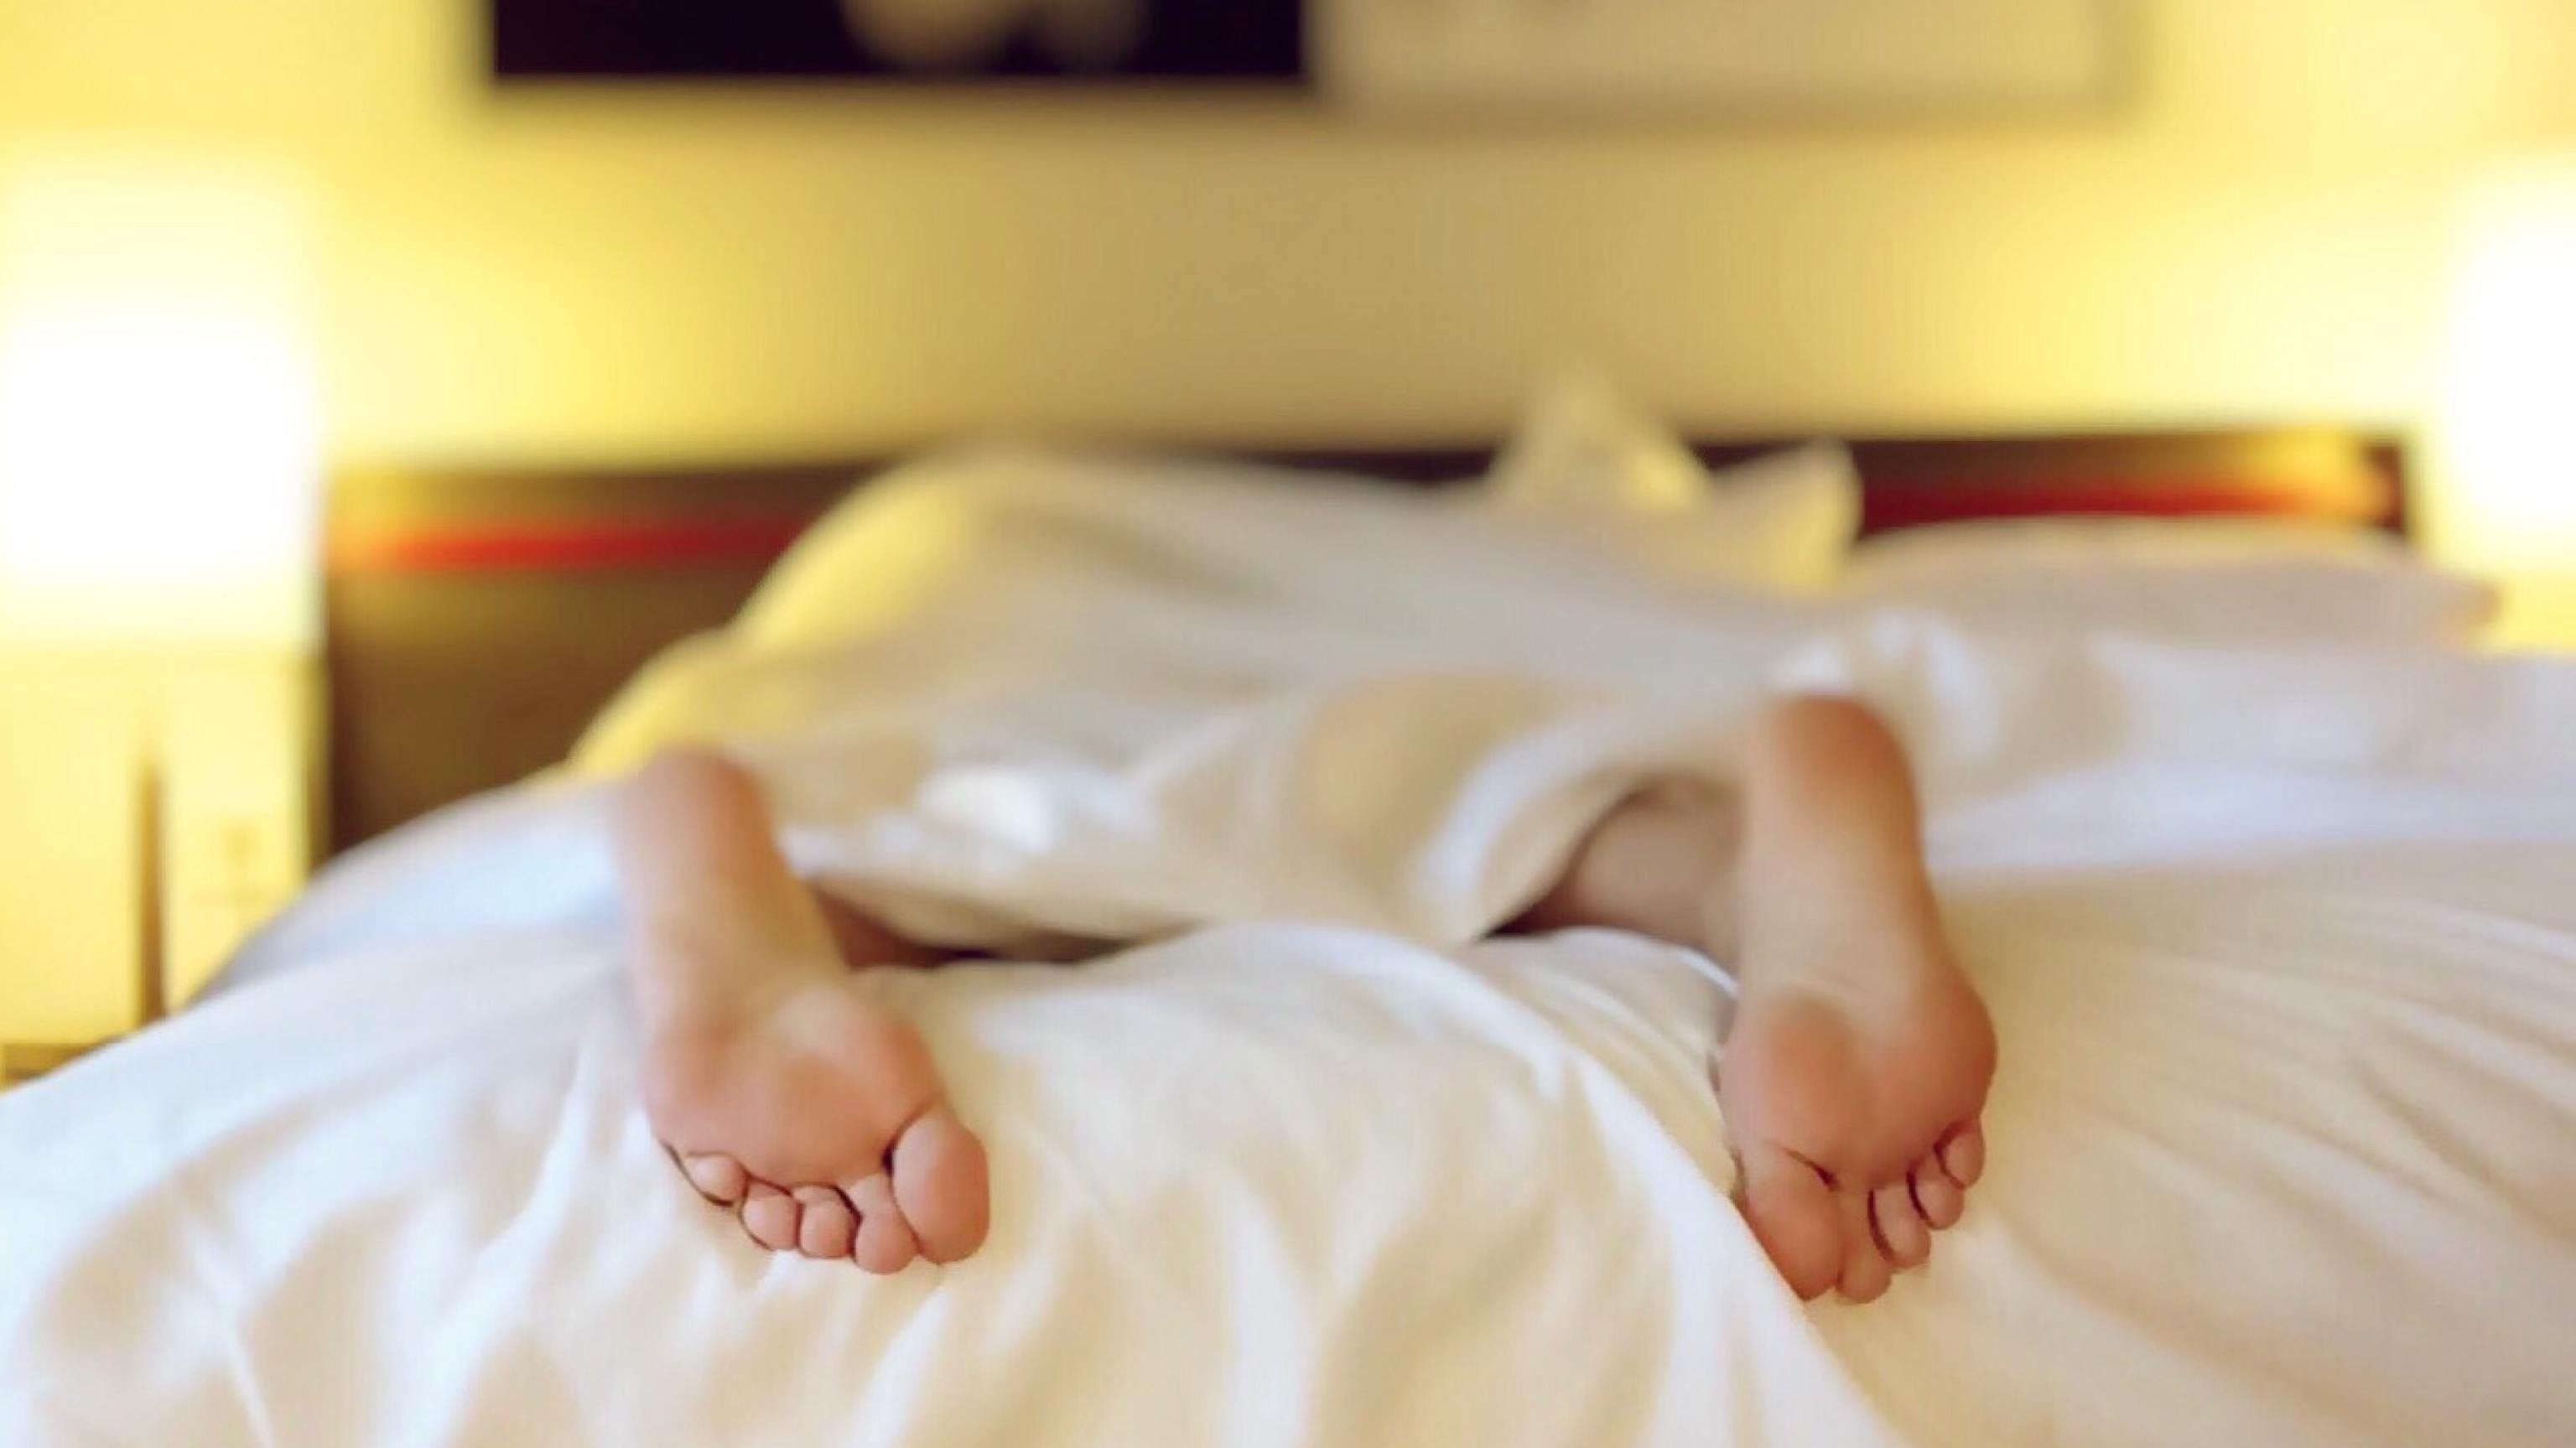 Study Links A Happy, Peaceful Mind To Sweet Dreams